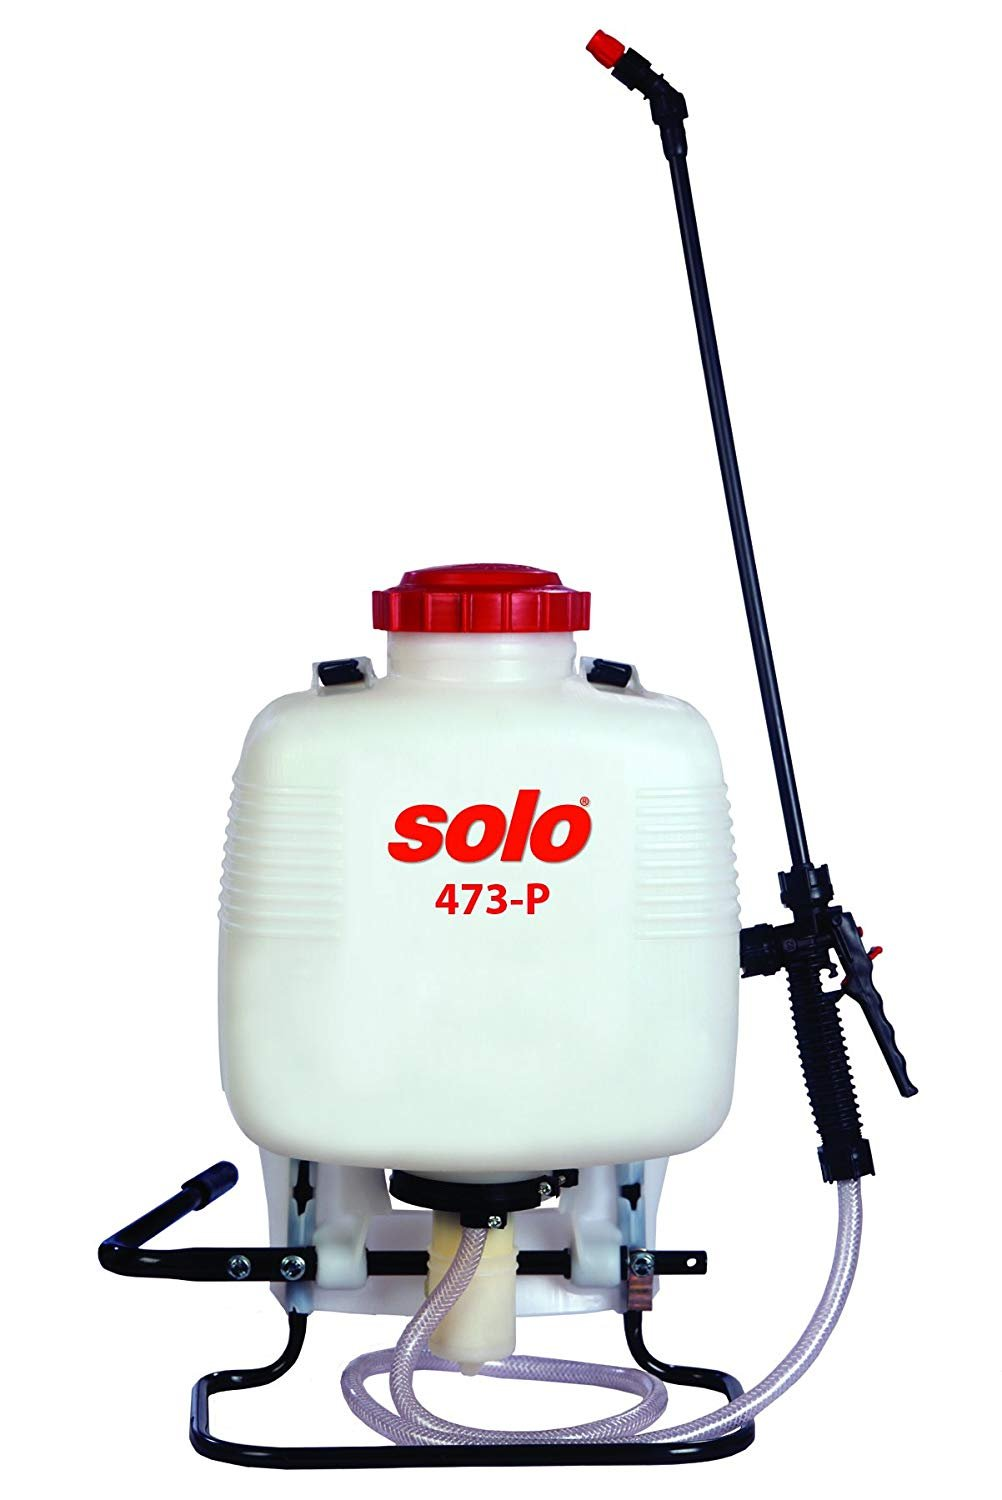 Amazon.com : Solo 473-P 3-Gallon Professional Backpack Sprayer, Pressure Range up to 90 psi (Pack of 4) : Garden & Outdoor